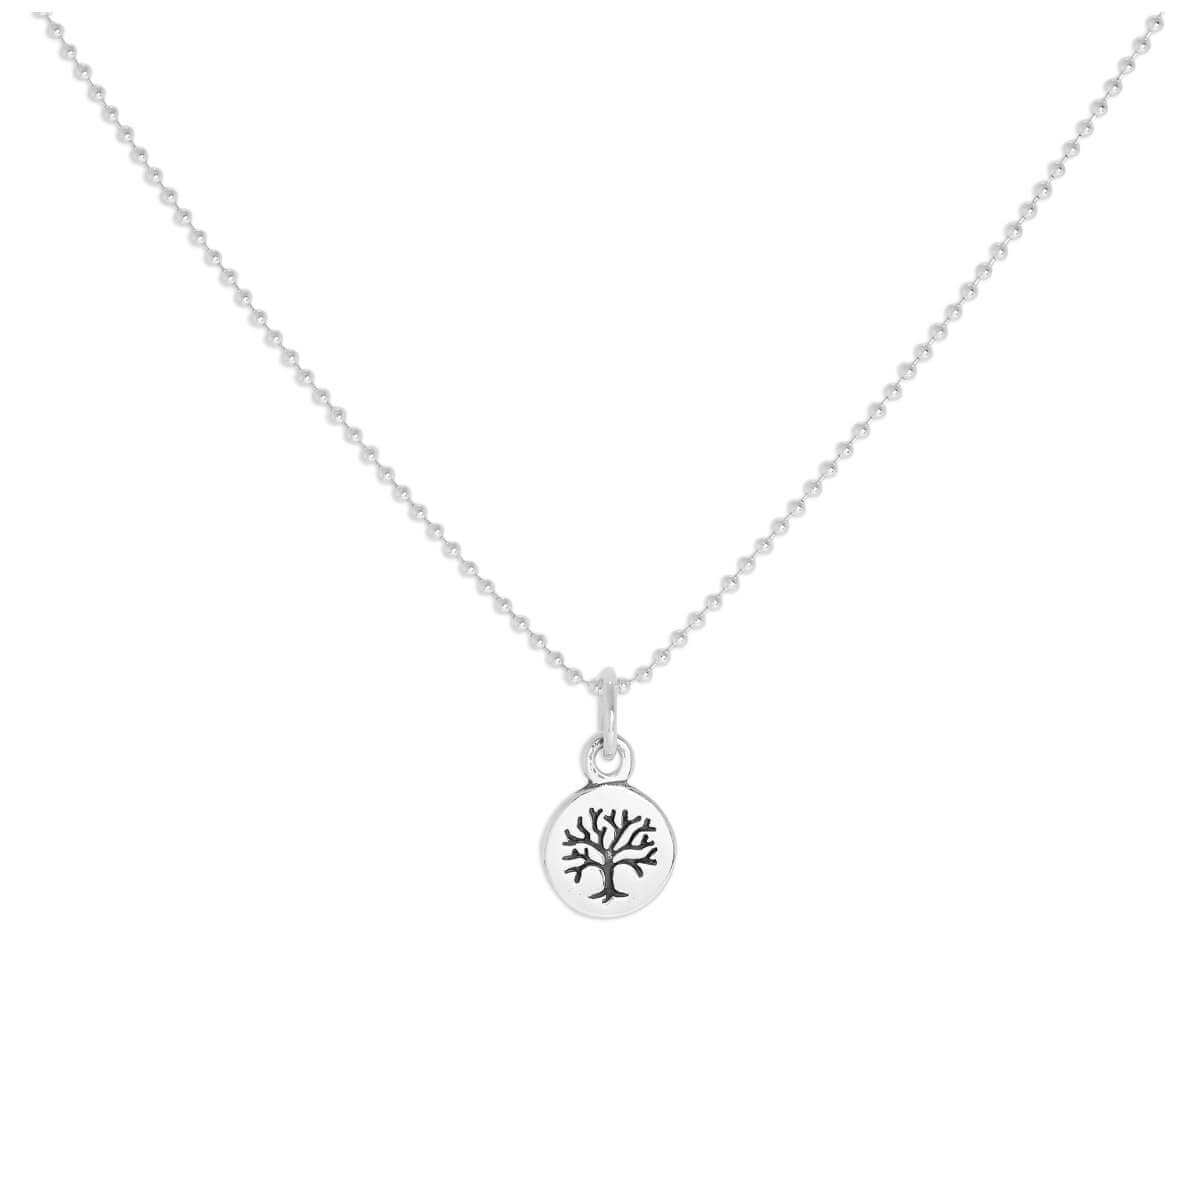 Tiny Sterling Silver Tree of Life Pendant Necklace 14 - 22 Inches